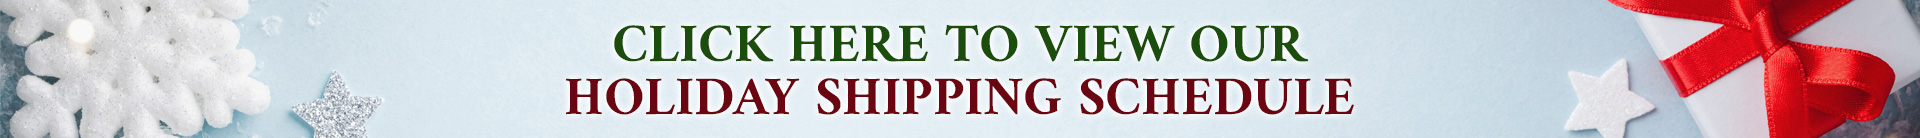 Click here to view our holiday shipping schedule